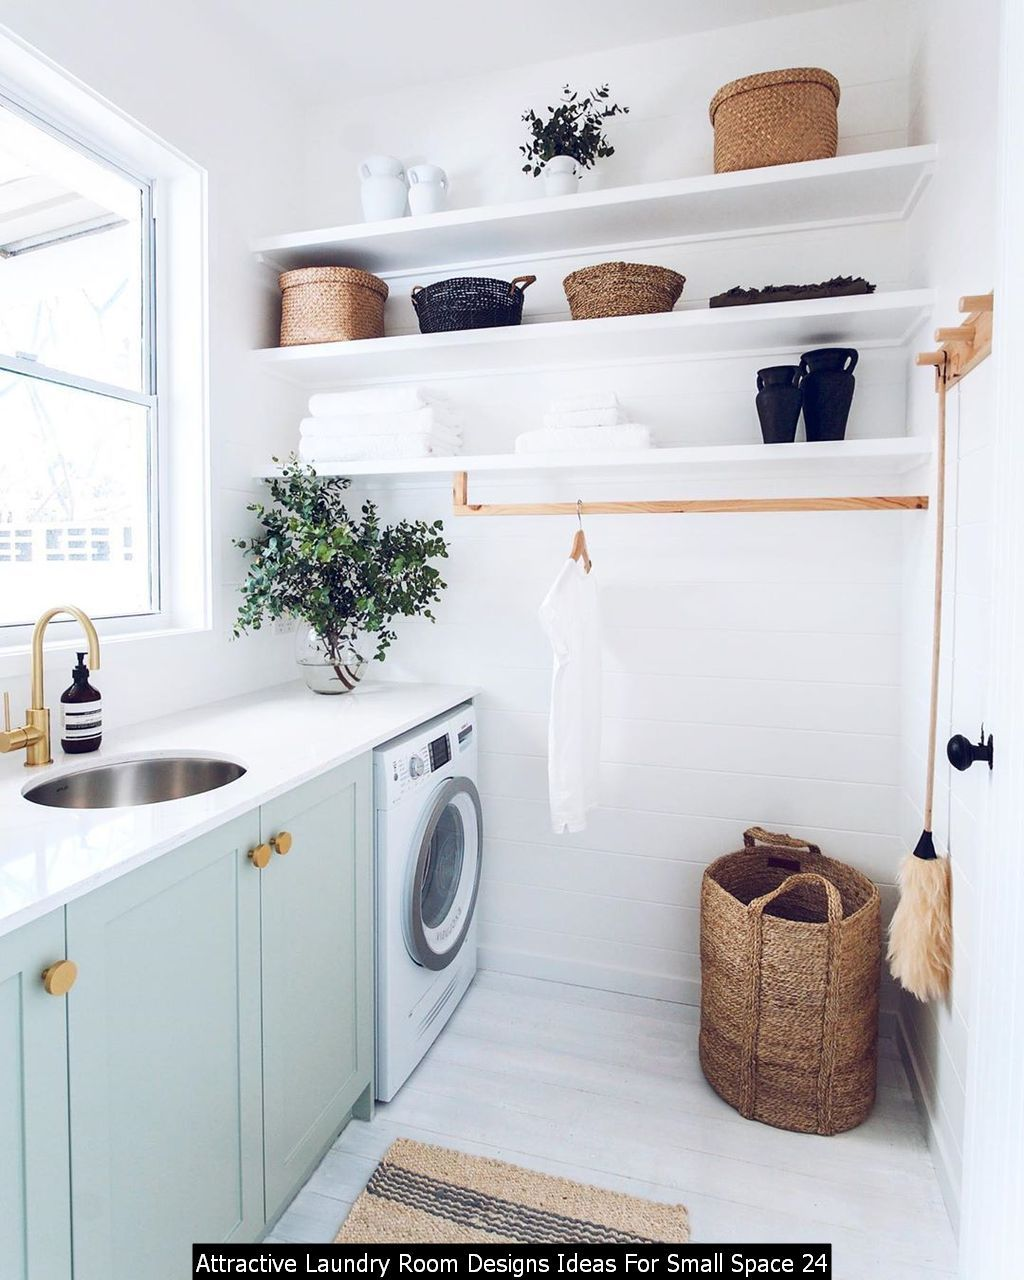 awesome 24 attractive laundry room designs ideas for small on extraordinary small laundry room design and decorating ideas modest laundry space id=11583